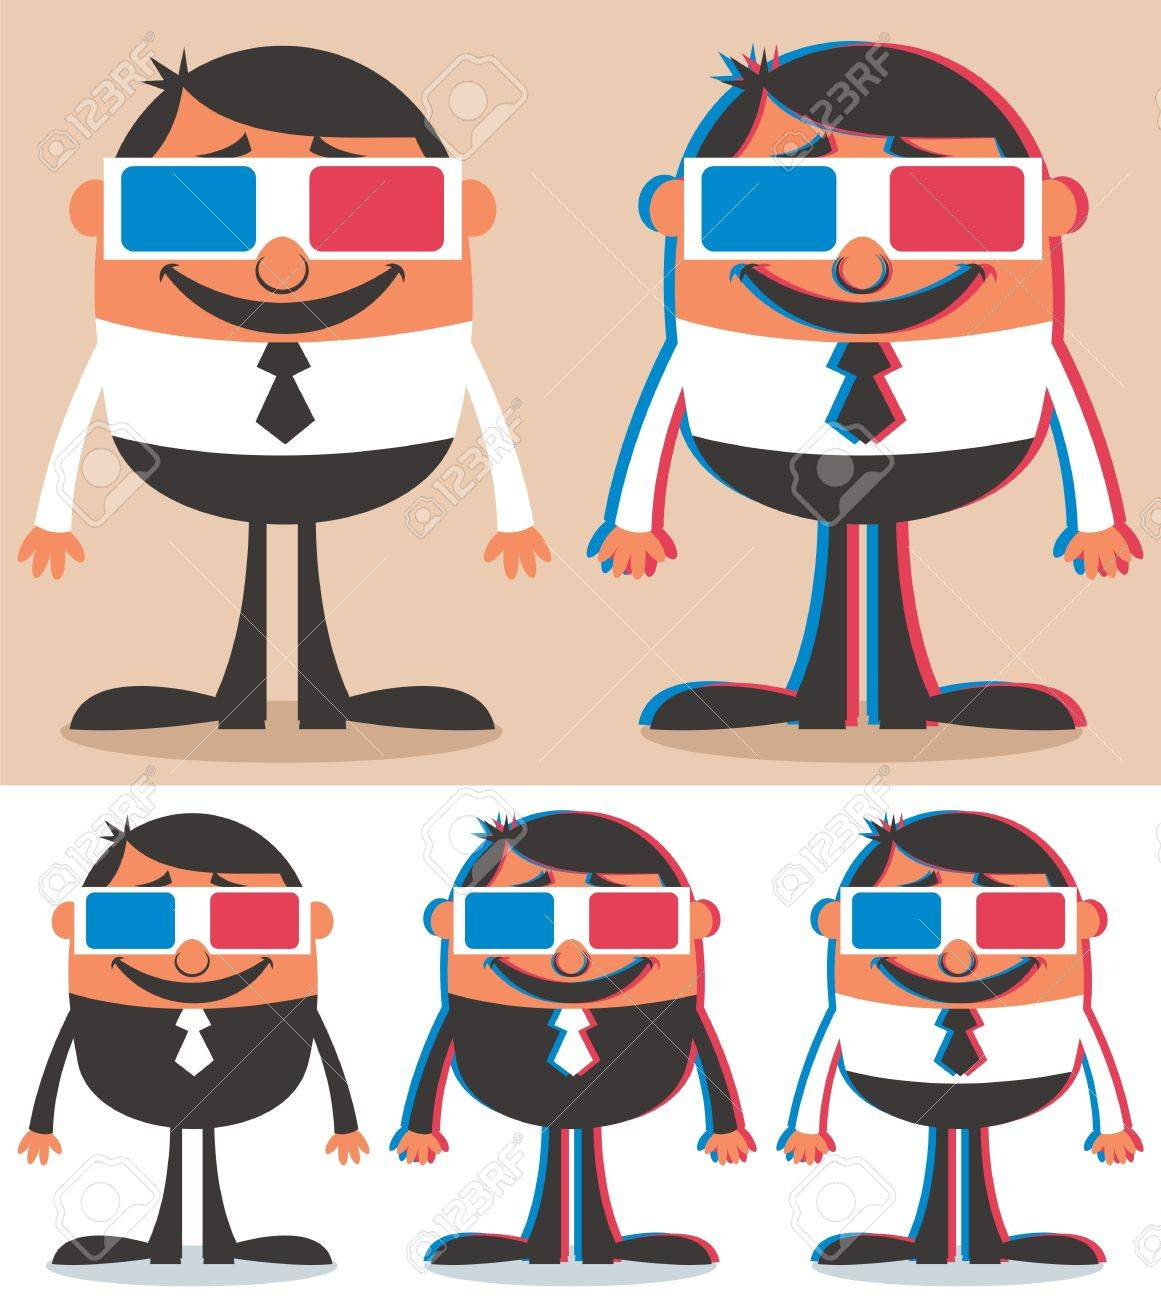 Cartoon character with 3D glasses. No transparency and gradients used. Stock Vector - 14346868